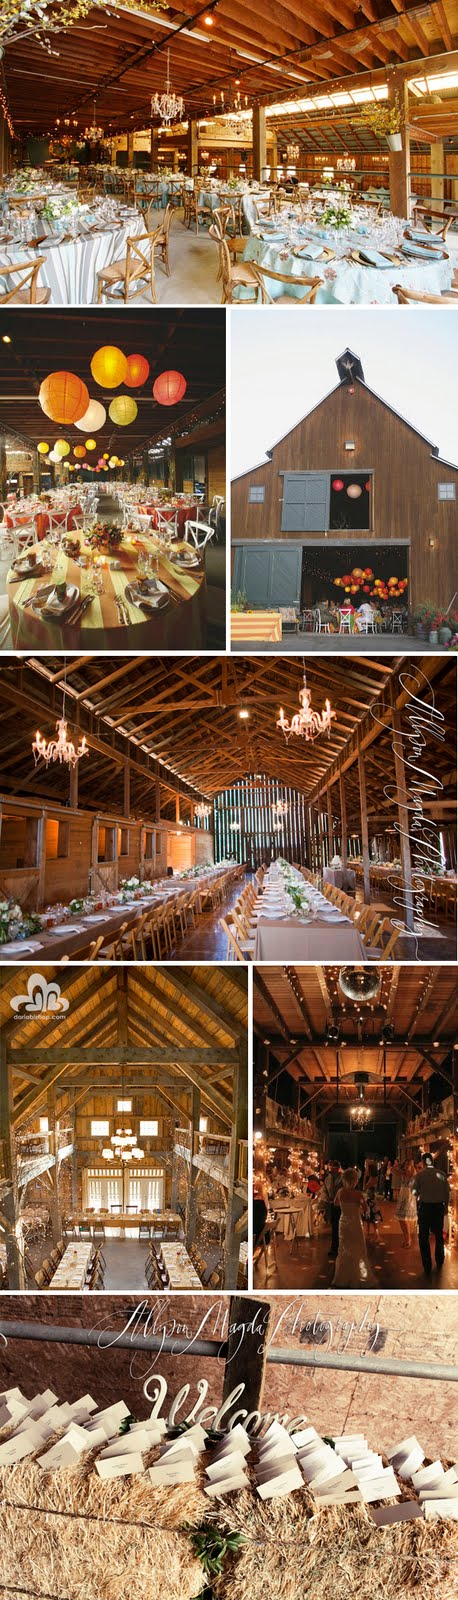 The Fine Living Muse Rustic Barn Wedding Or Cocktail